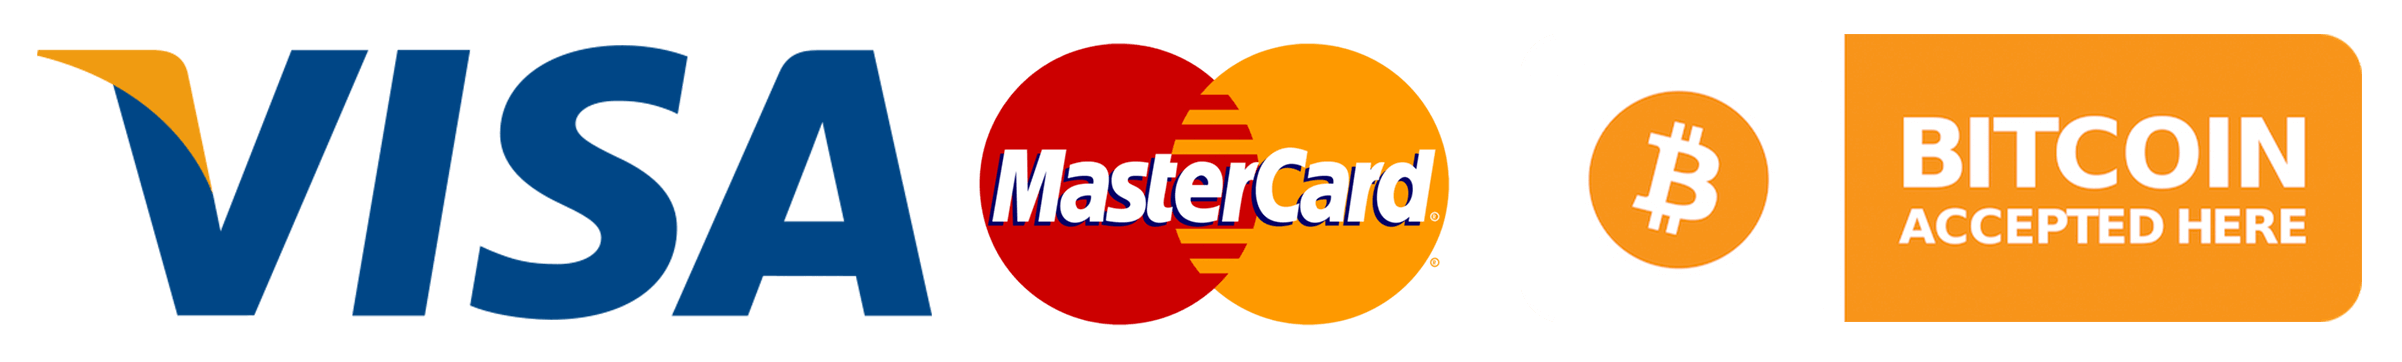 Buy & pay for generic Viagra, Cialis & Levitra with Visa credit card and Bitcoin